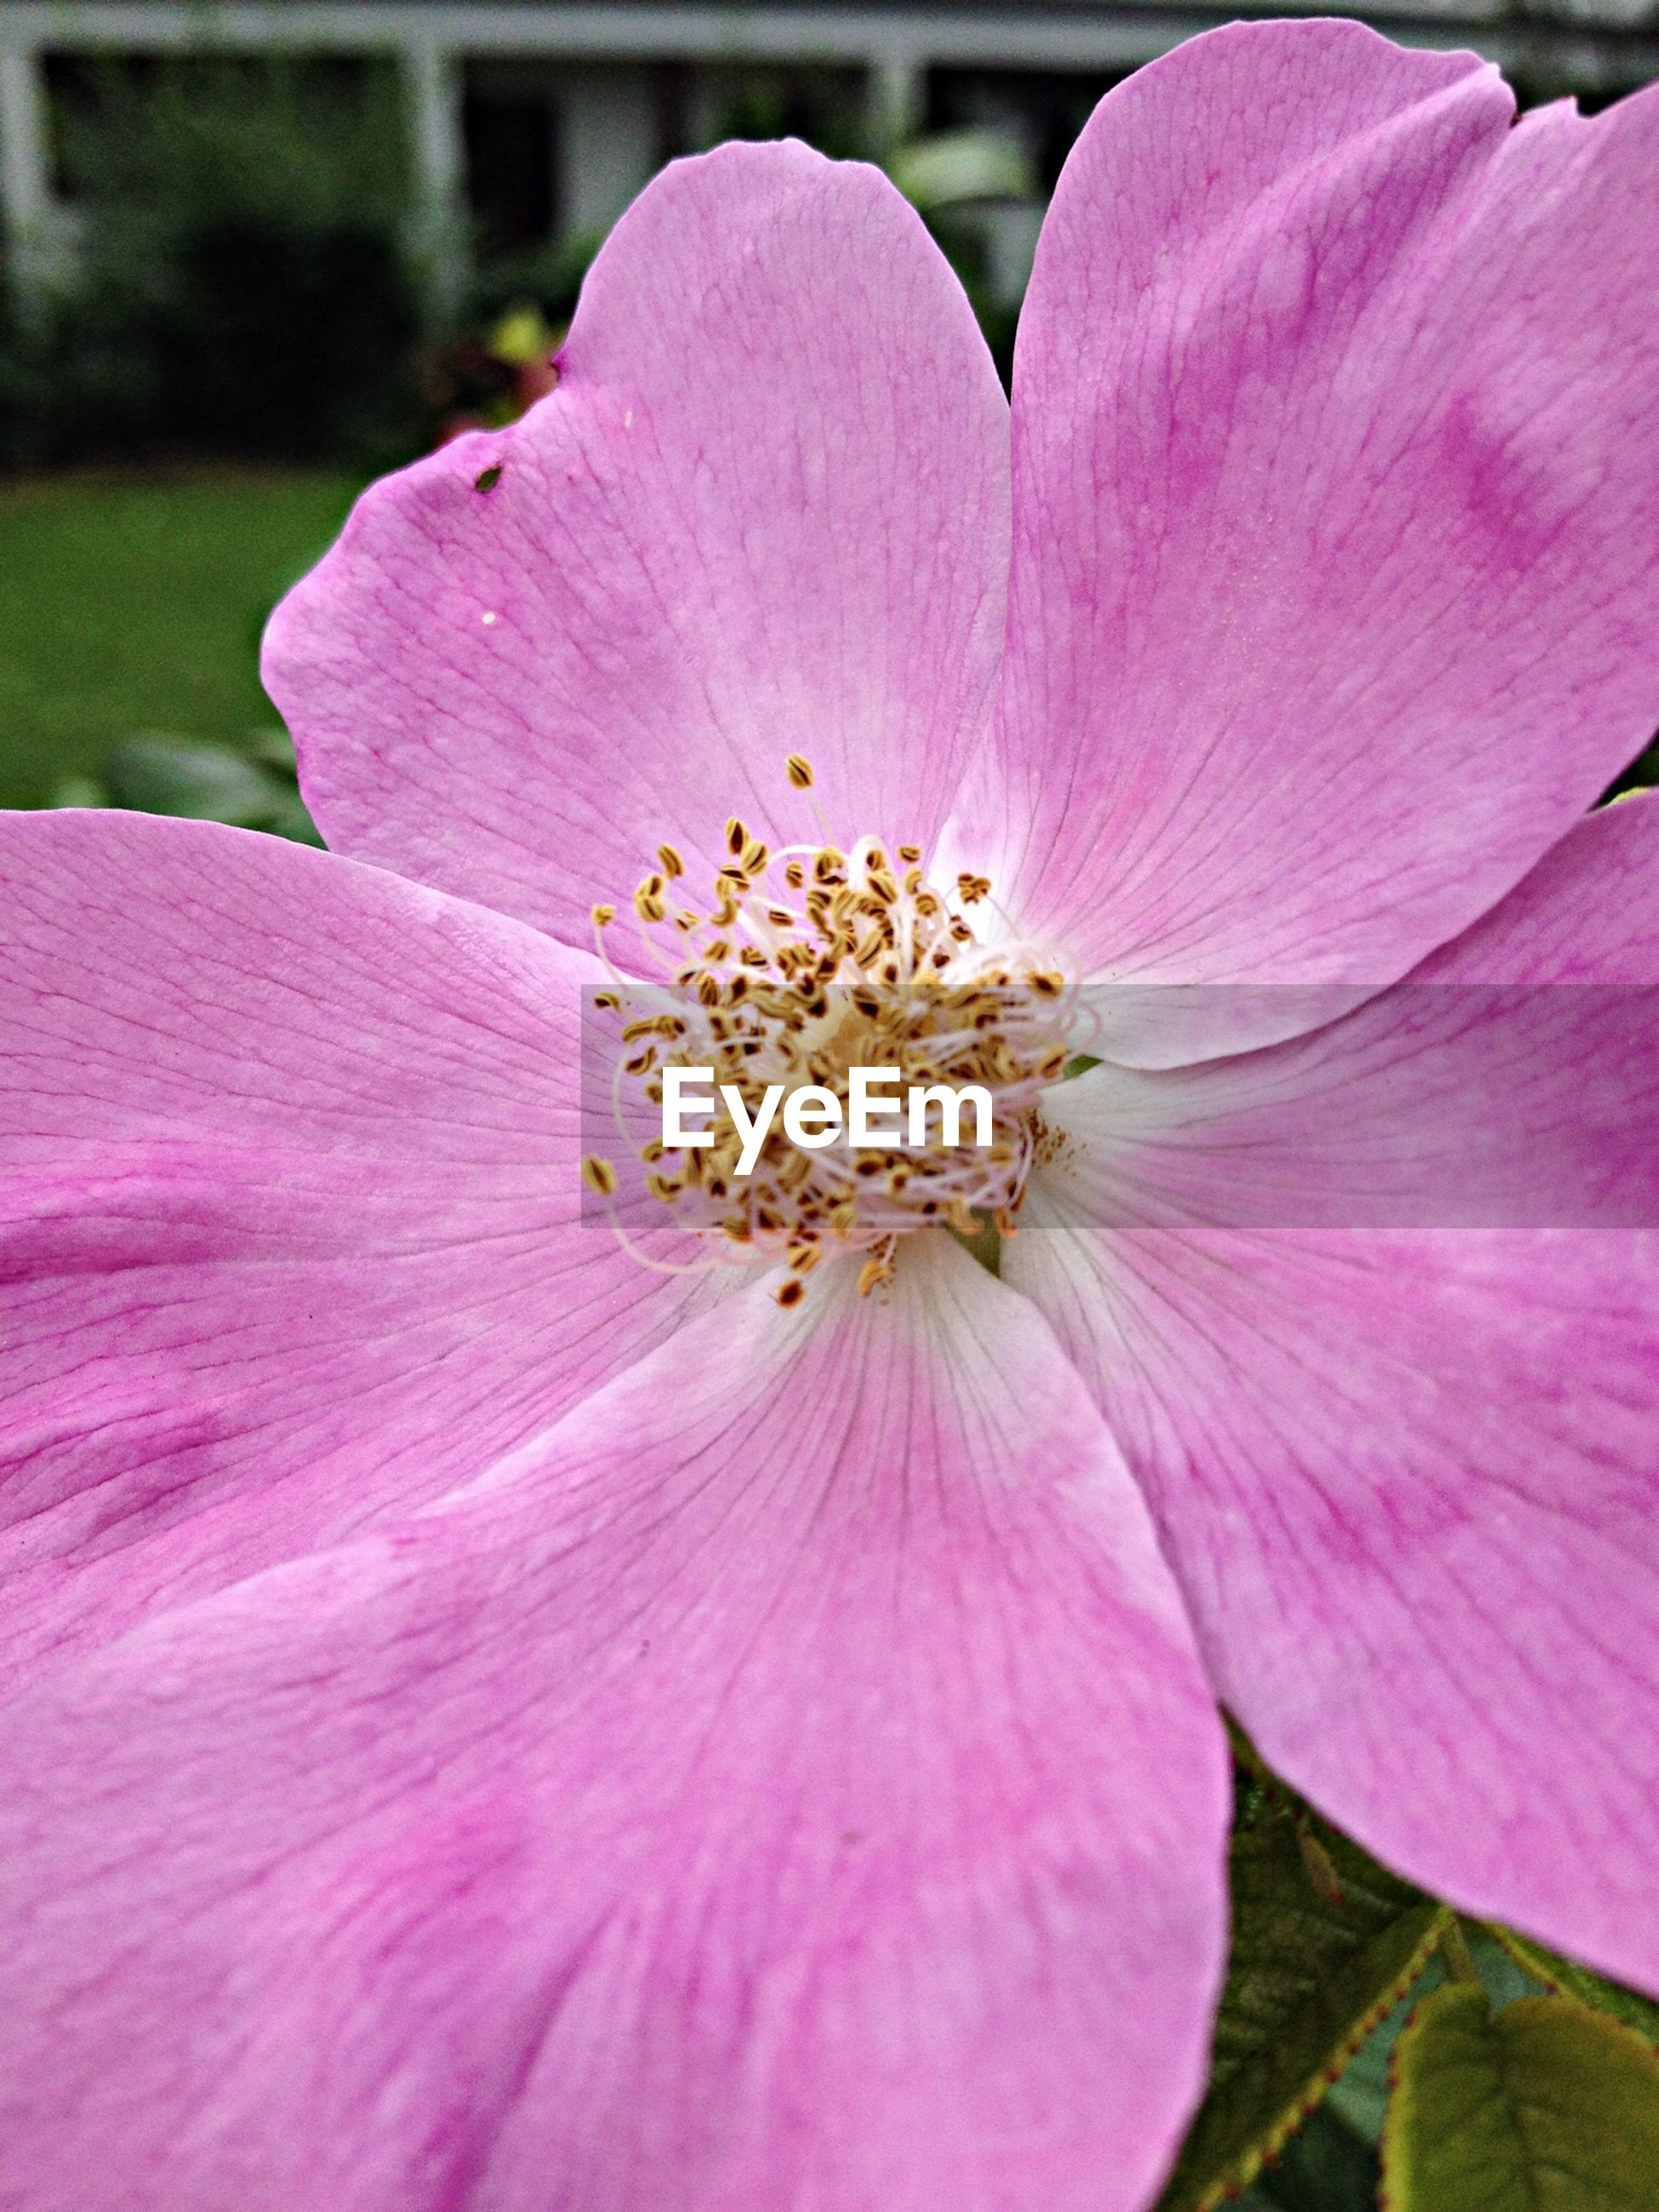 flower, petal, freshness, flower head, fragility, pink color, close-up, growth, beauty in nature, stamen, single flower, nature, pollen, pink, blossom, blooming, focus on foreground, in bloom, macro, outdoors